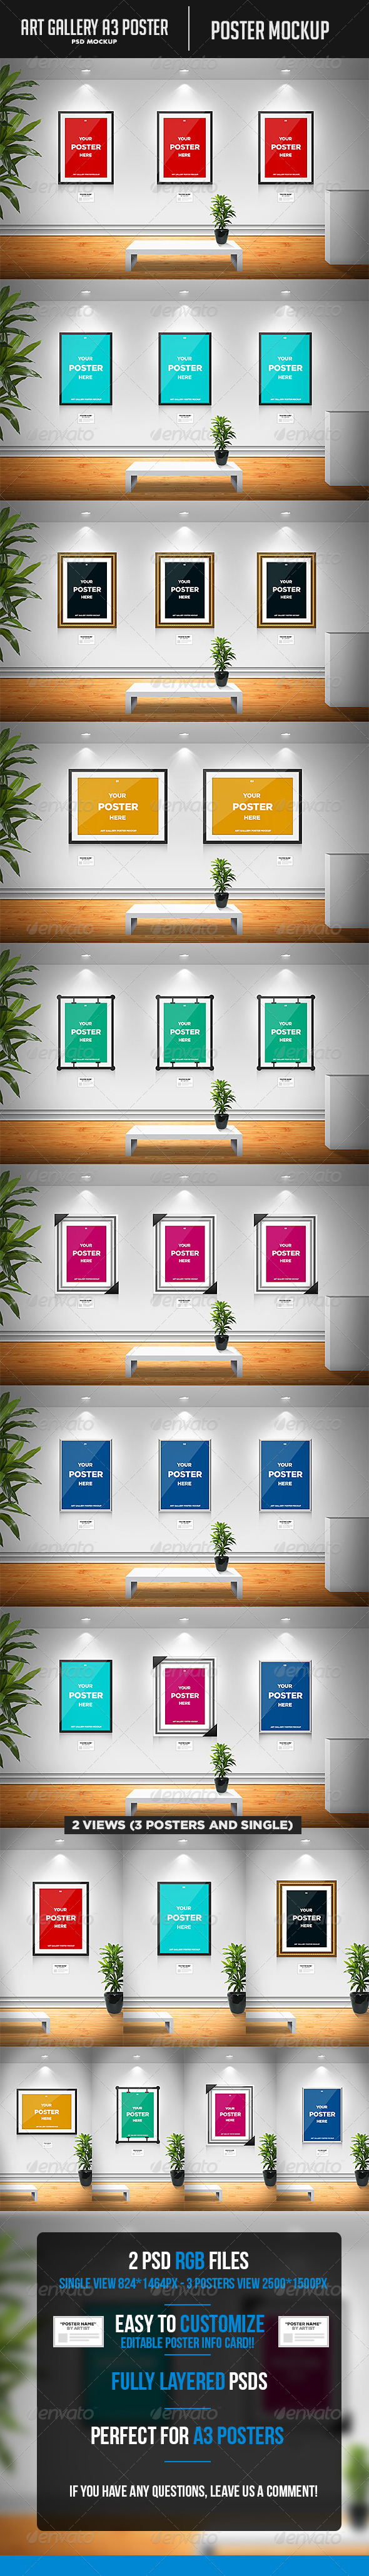 Art Gallery A3 Poster Mockup - Posters Print